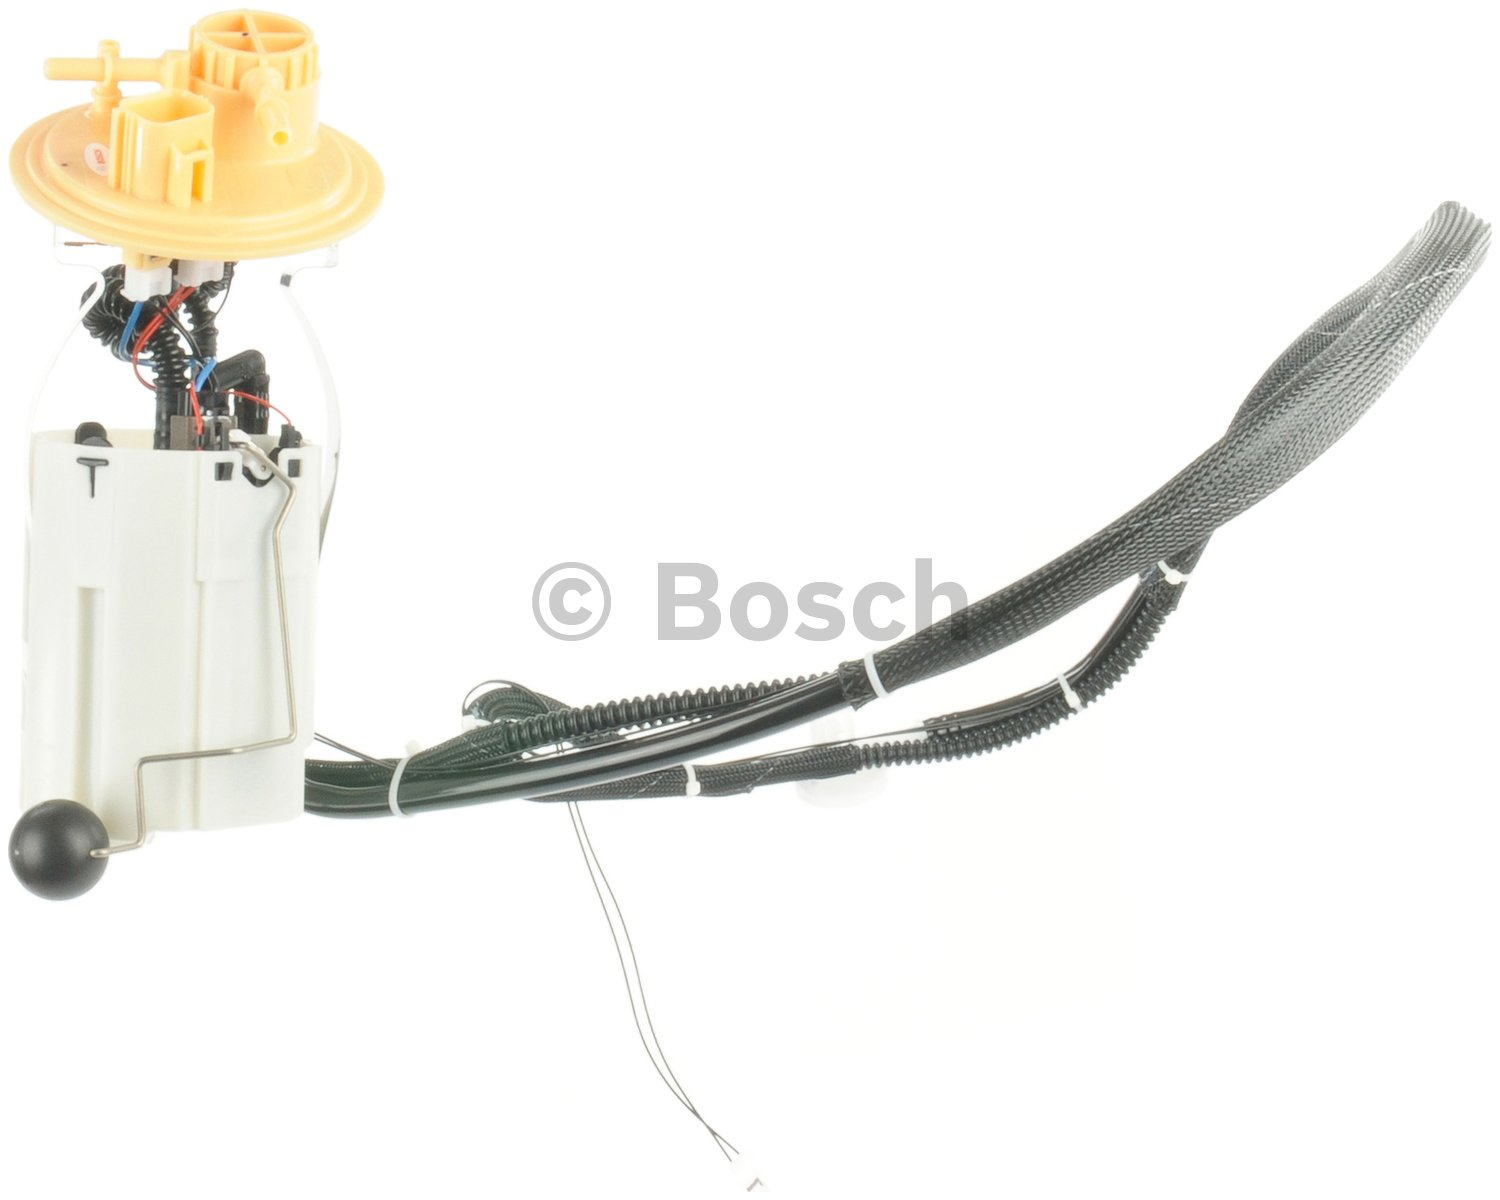 2004 Volvo Xc70 Fuel Pump Module Assembly Filter Bs 67737